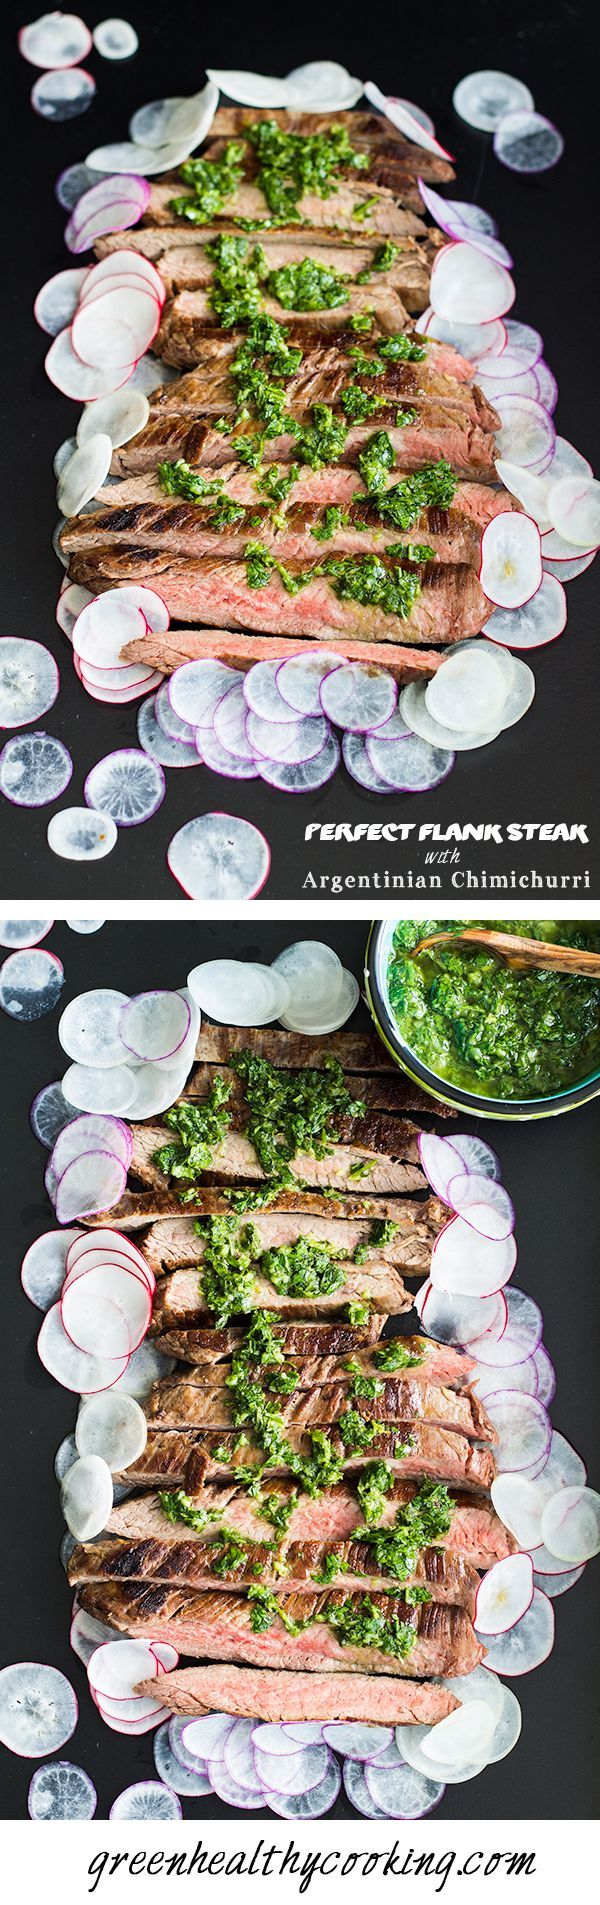 To die for Perfect Flank Steak with Argentinian Chimichurri recipe including instructions on how to make a perfect steak to desired doneness. #Beef #Flank_Steak #Chimichurri